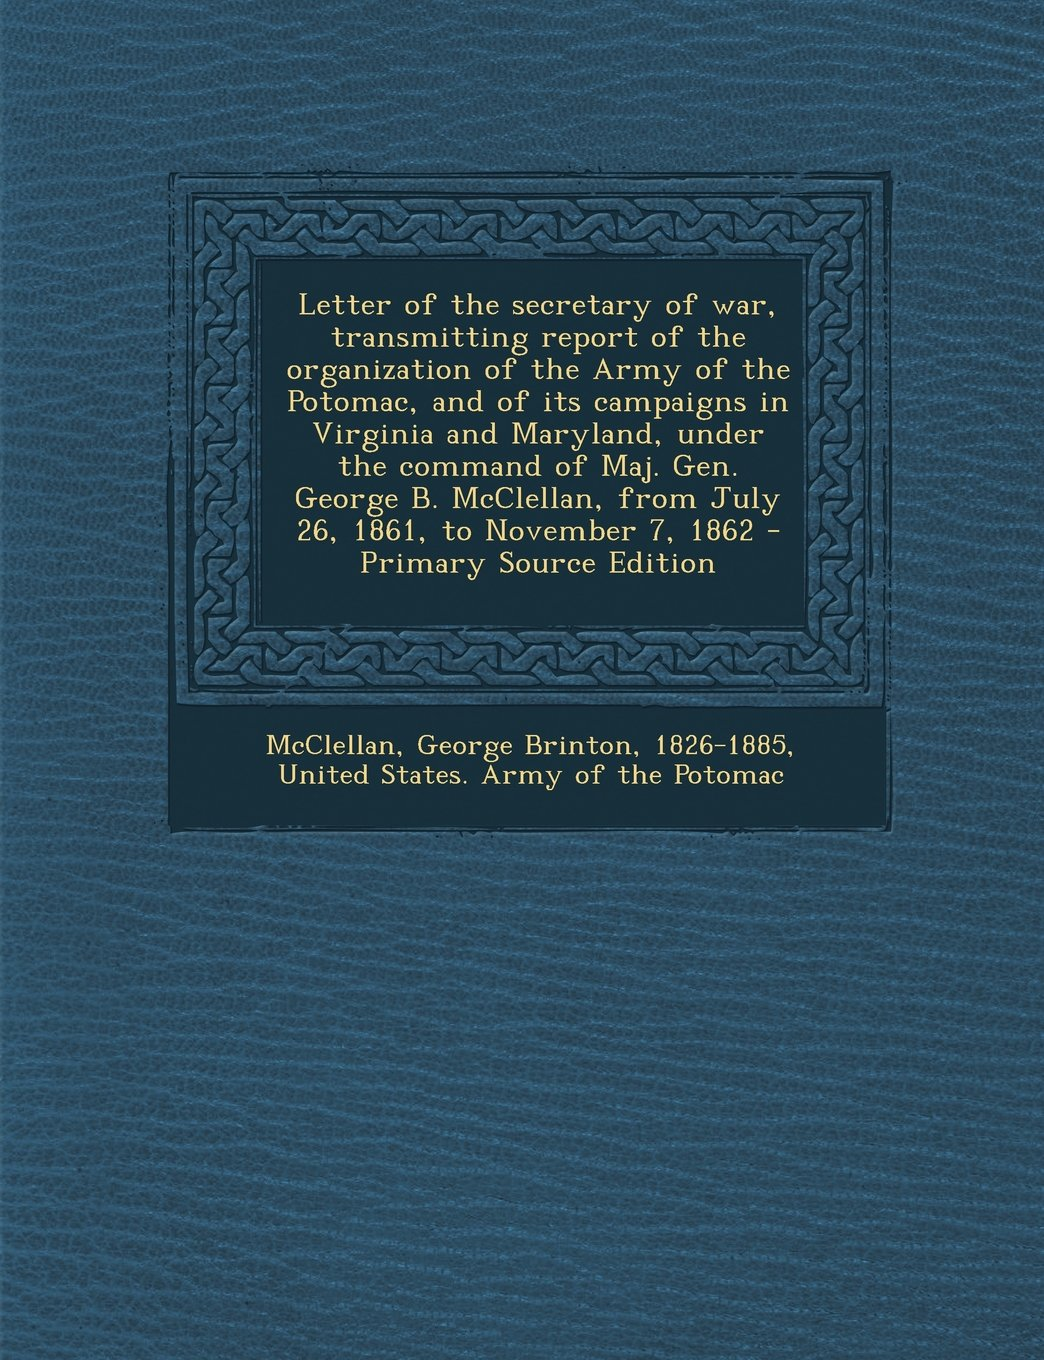 Download Letter of the secretary of war, transmitting report of the organization of the Army of the Potomac, and of its campaigns in Virginia and Maryland, ... 1861, to November 7, 1862 - Primary Source ebook